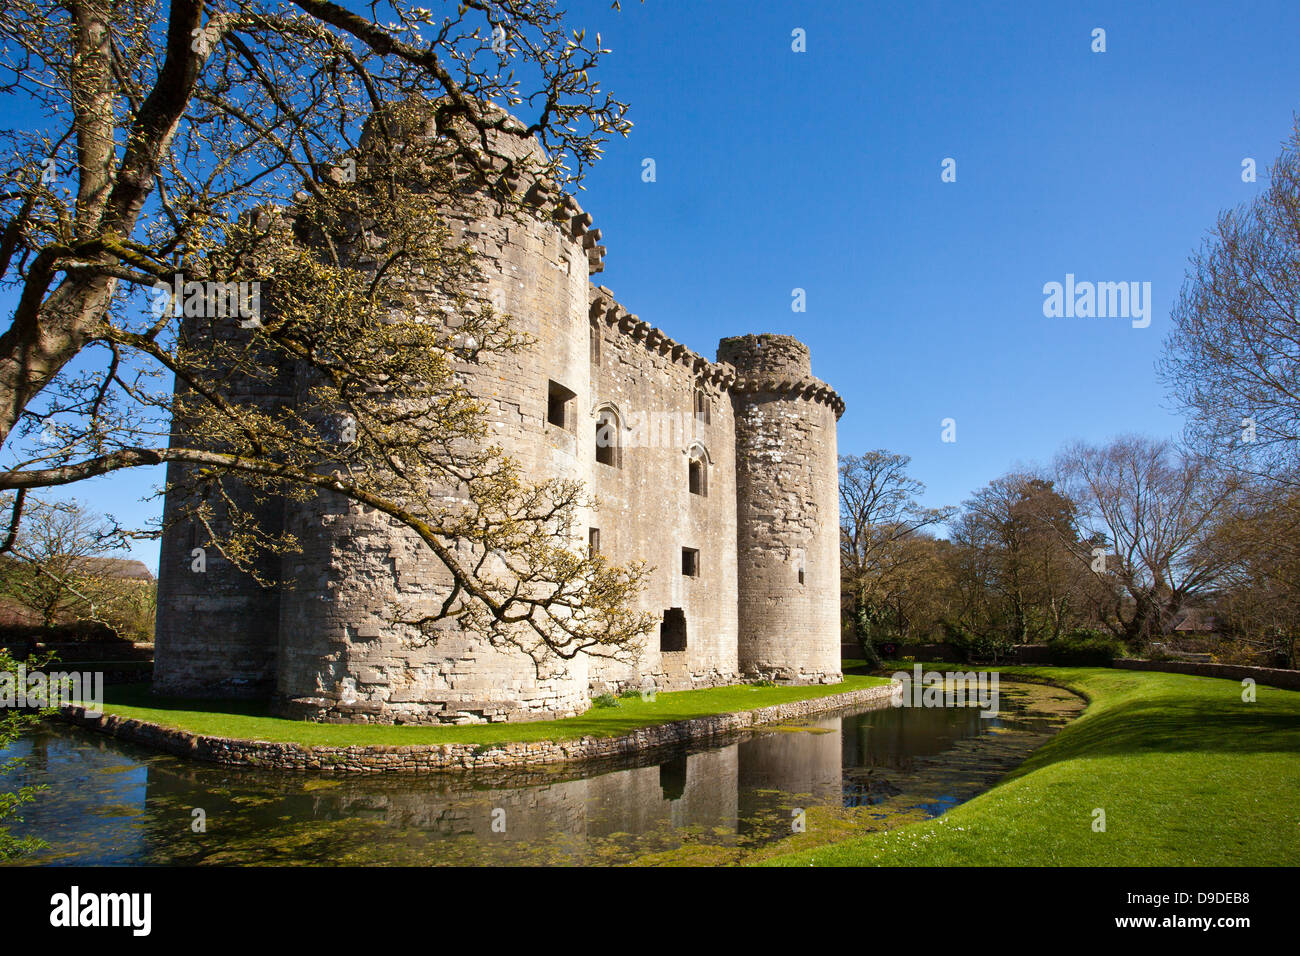 The Ruins Of Nunney Castle Surrounded By Its Moat Built